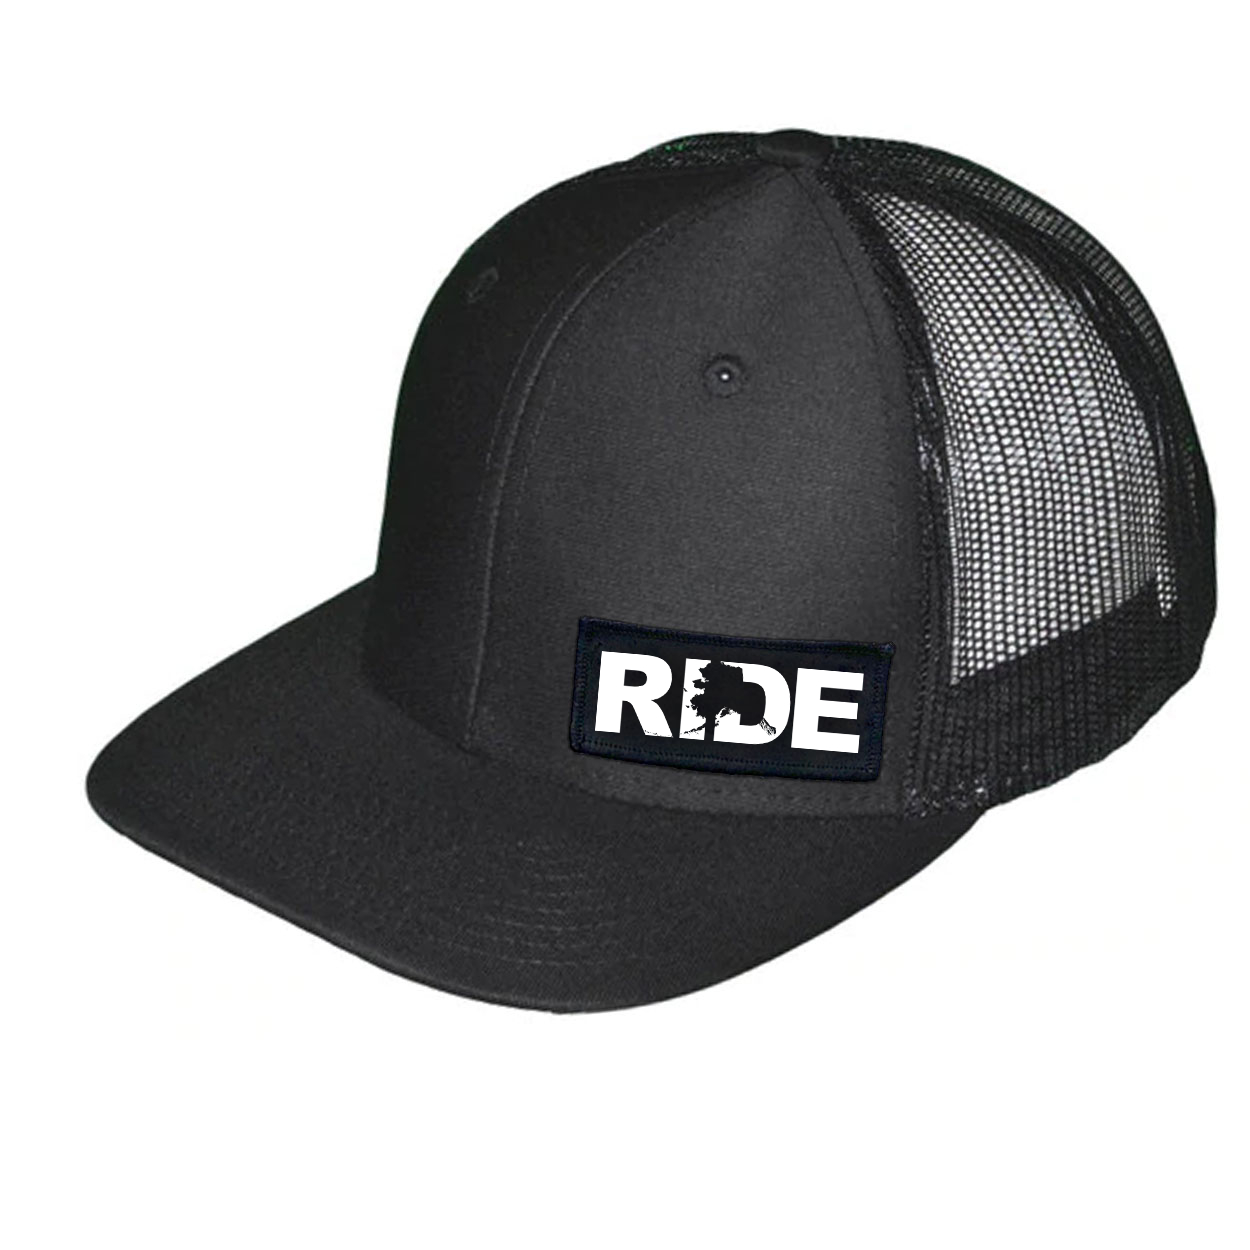 Ride Alaska Night Out Woven Patch Snapback Trucker Hat Black (White Logo)